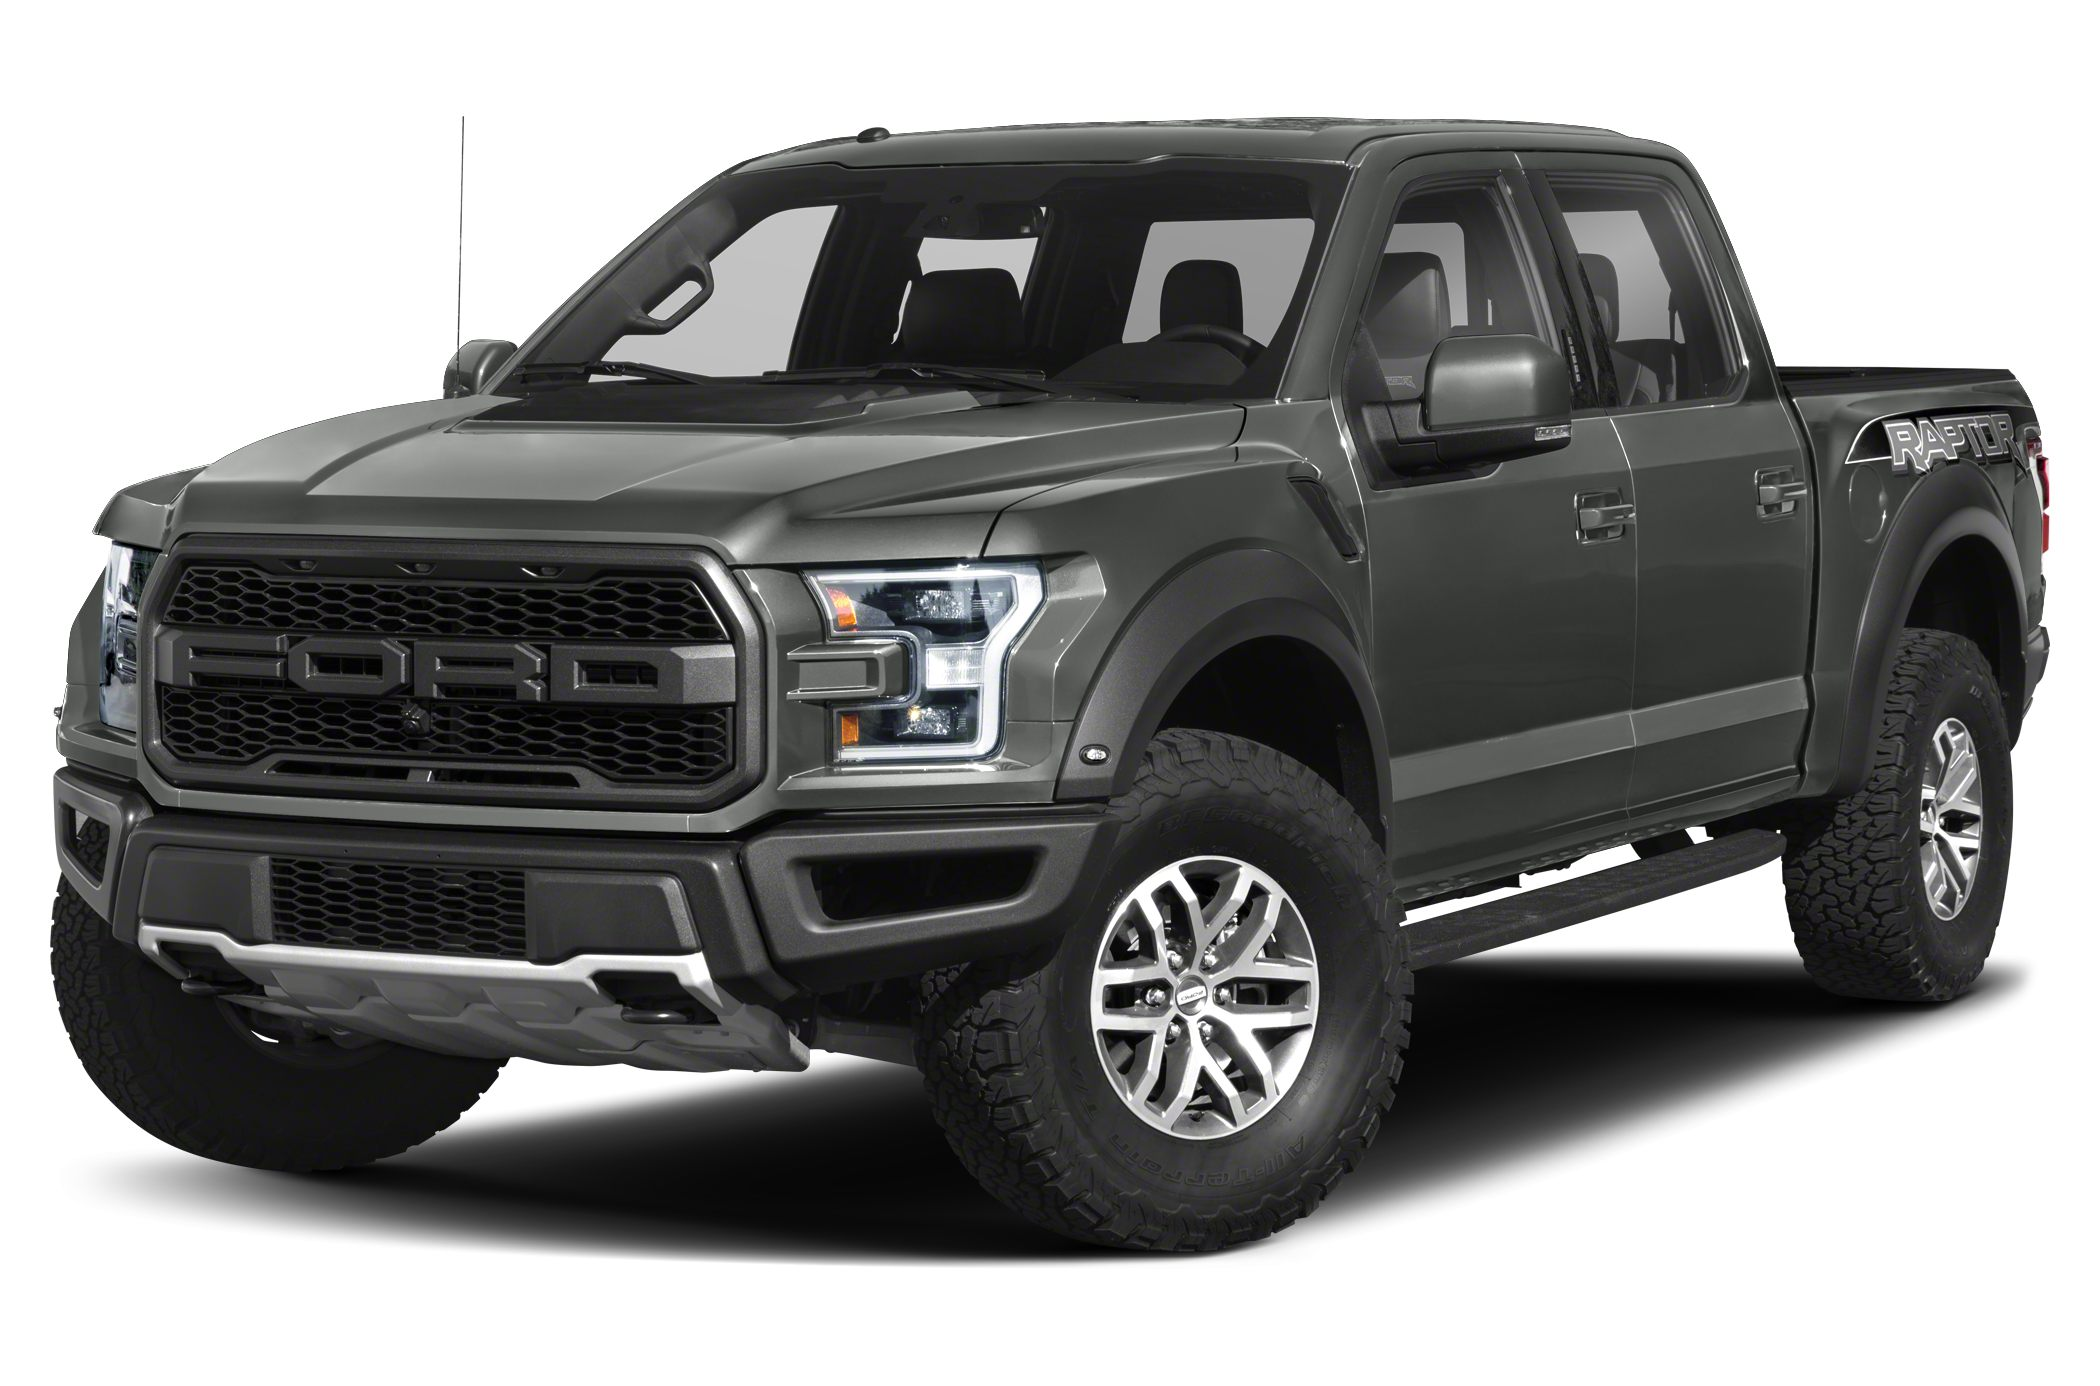 2018 Ford F-150 Raptor 4x4 SuperCrew Cab Styleside 5.5 ft. box 145 in. WB